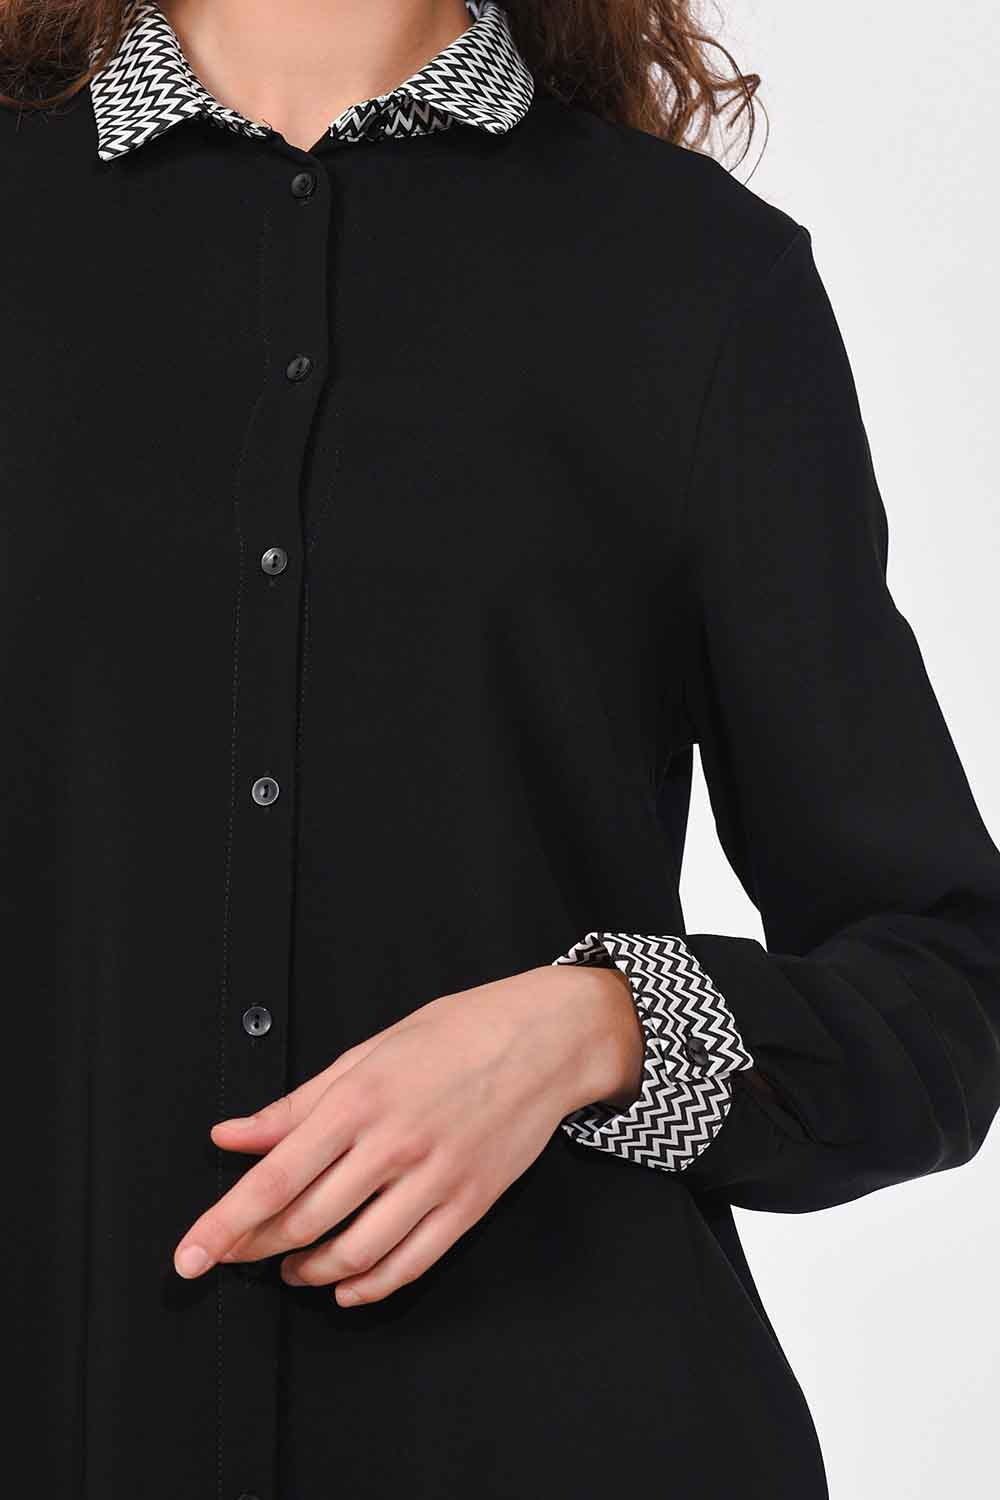 MIZALLE Collar Cuff Patterned Tunic Shirt (Black) (1)